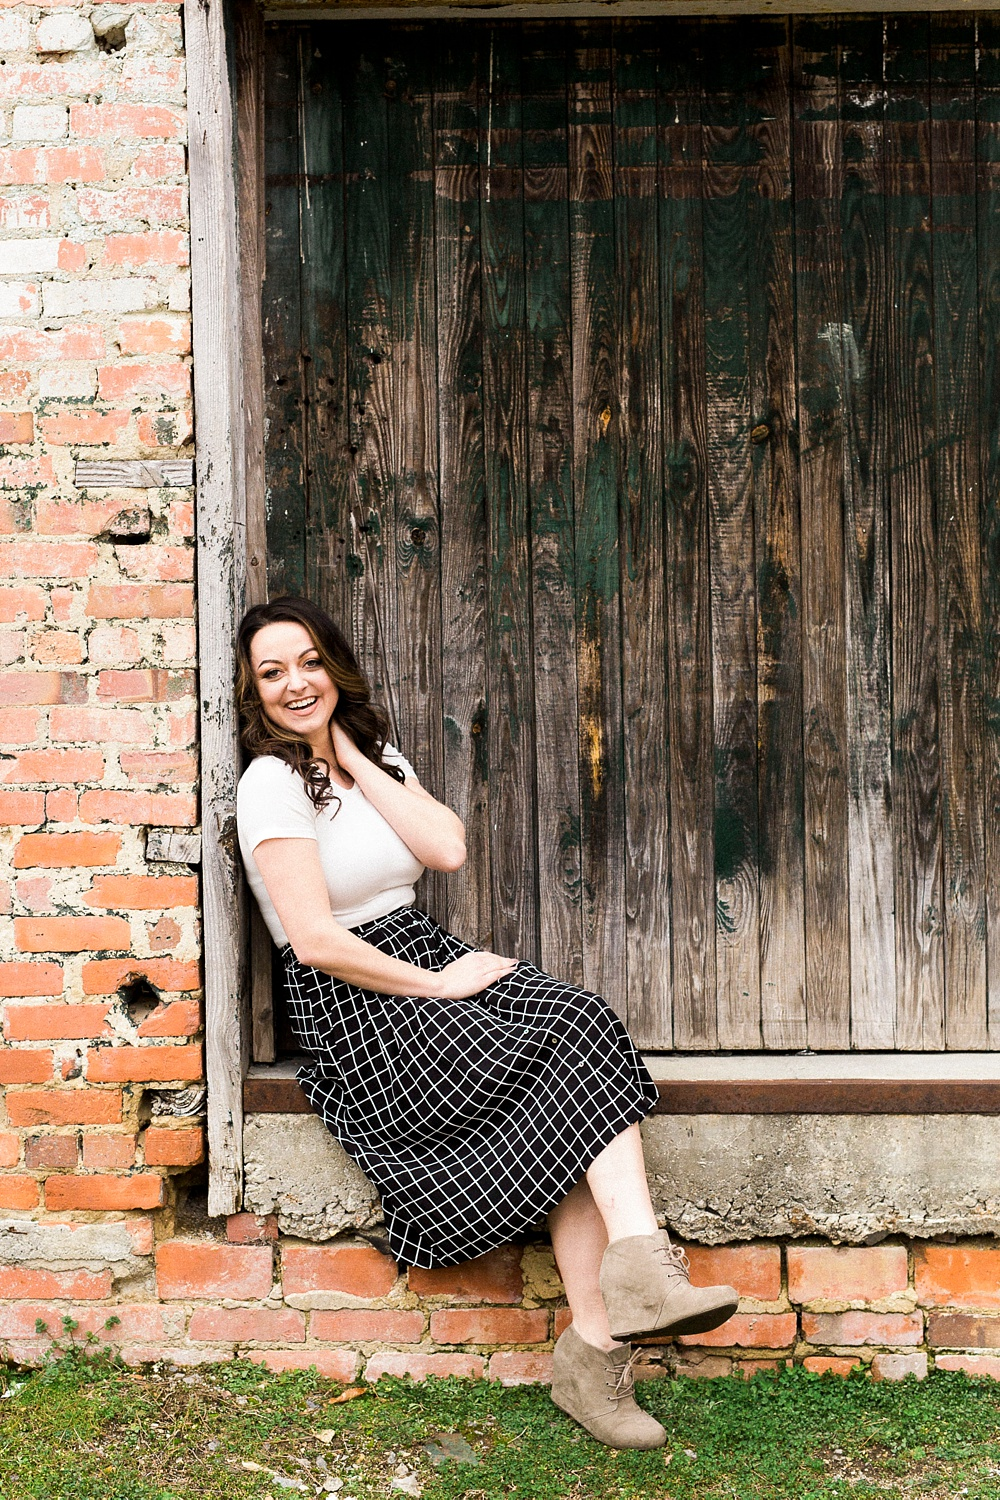 Megan Morales, Four Oaks, NC Photographer